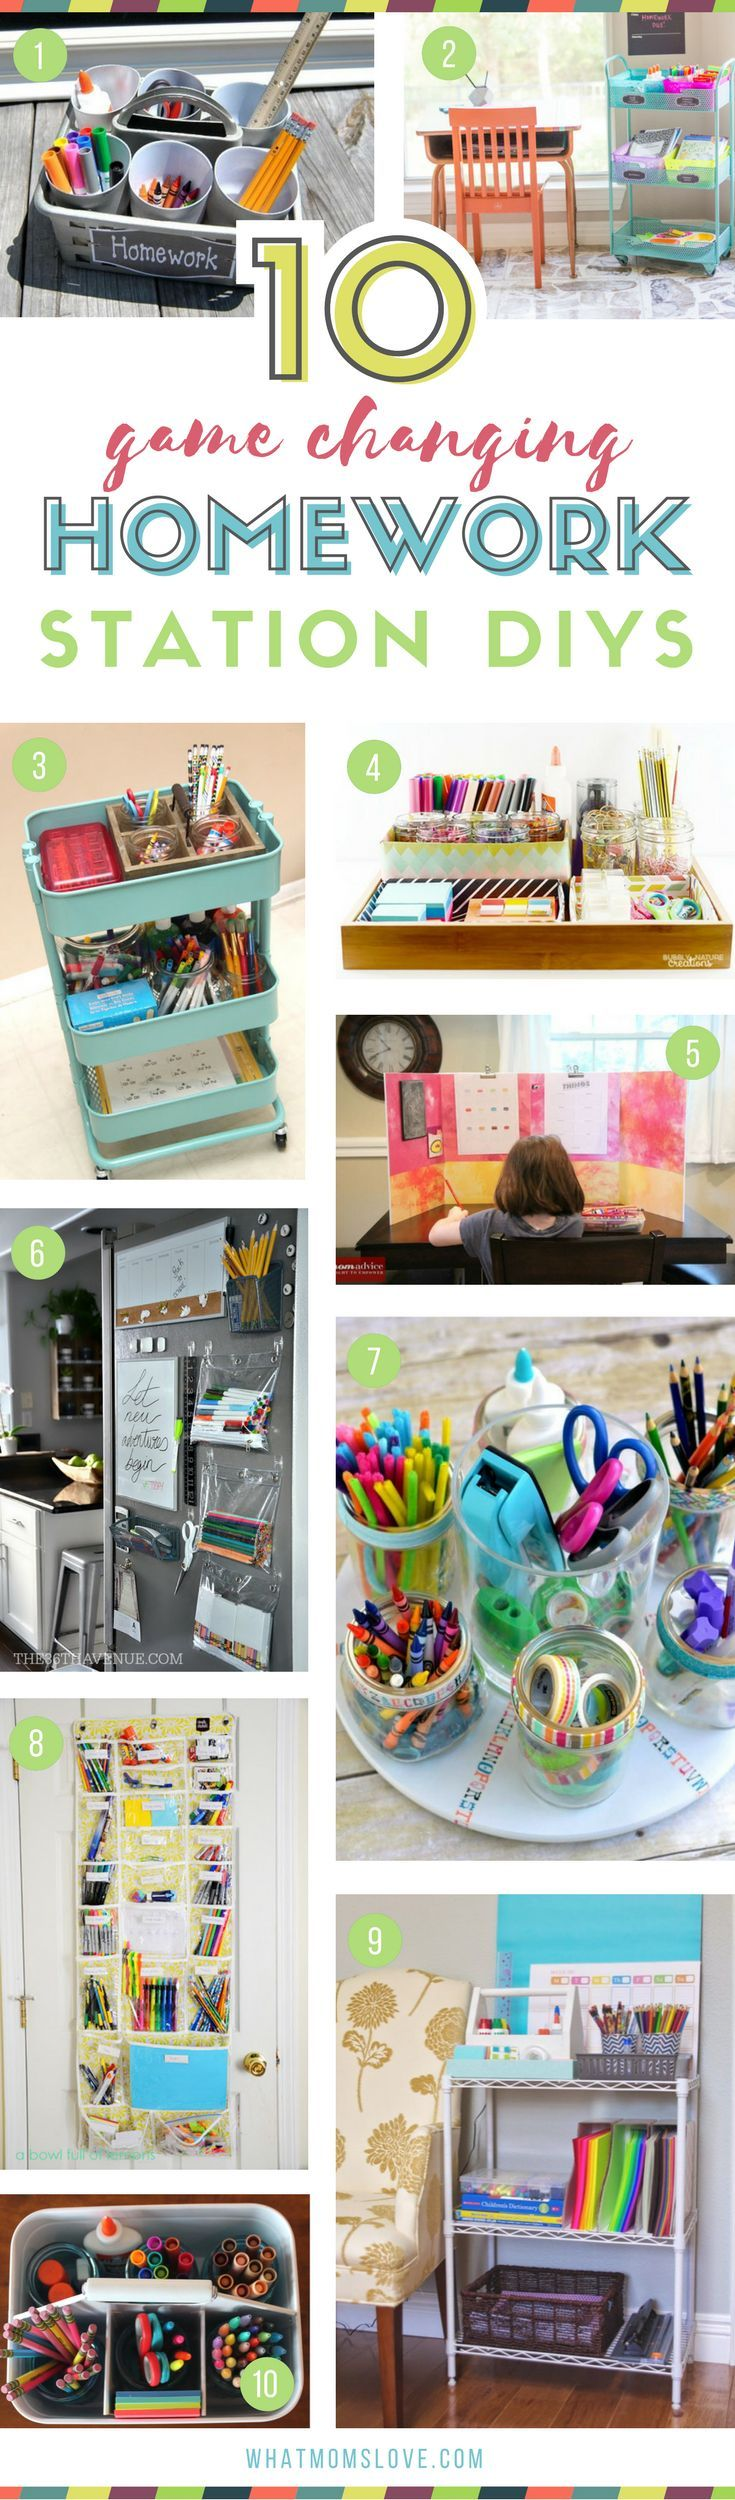 DIY Homework Station Ideas for Kids | Organization tips and ideas to make a portable study space at home